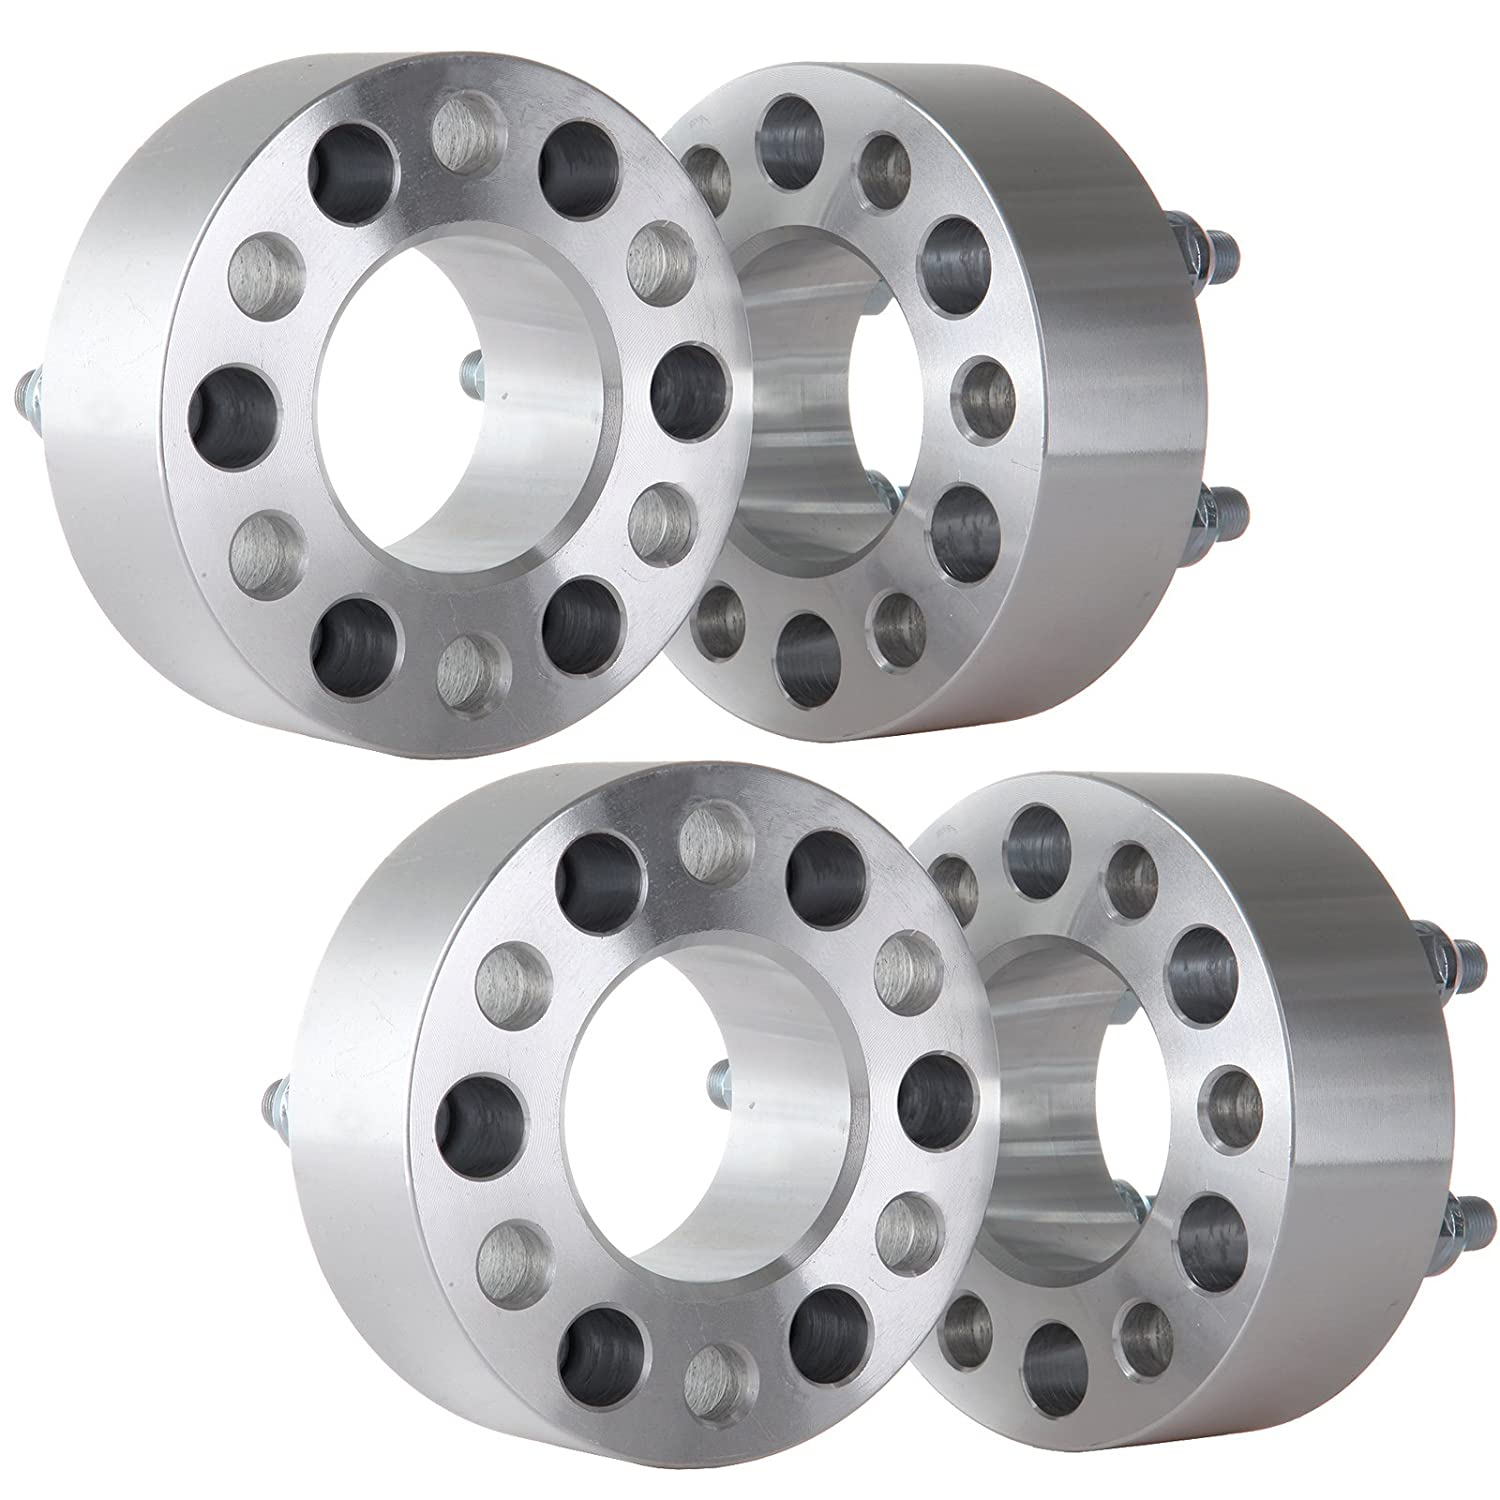 4X ECCPP 6x4.5 Wheel Spacer Adapters 6 Lug 2 inch 6x4.5 to 6x4.5 Compatible with Durango Viper